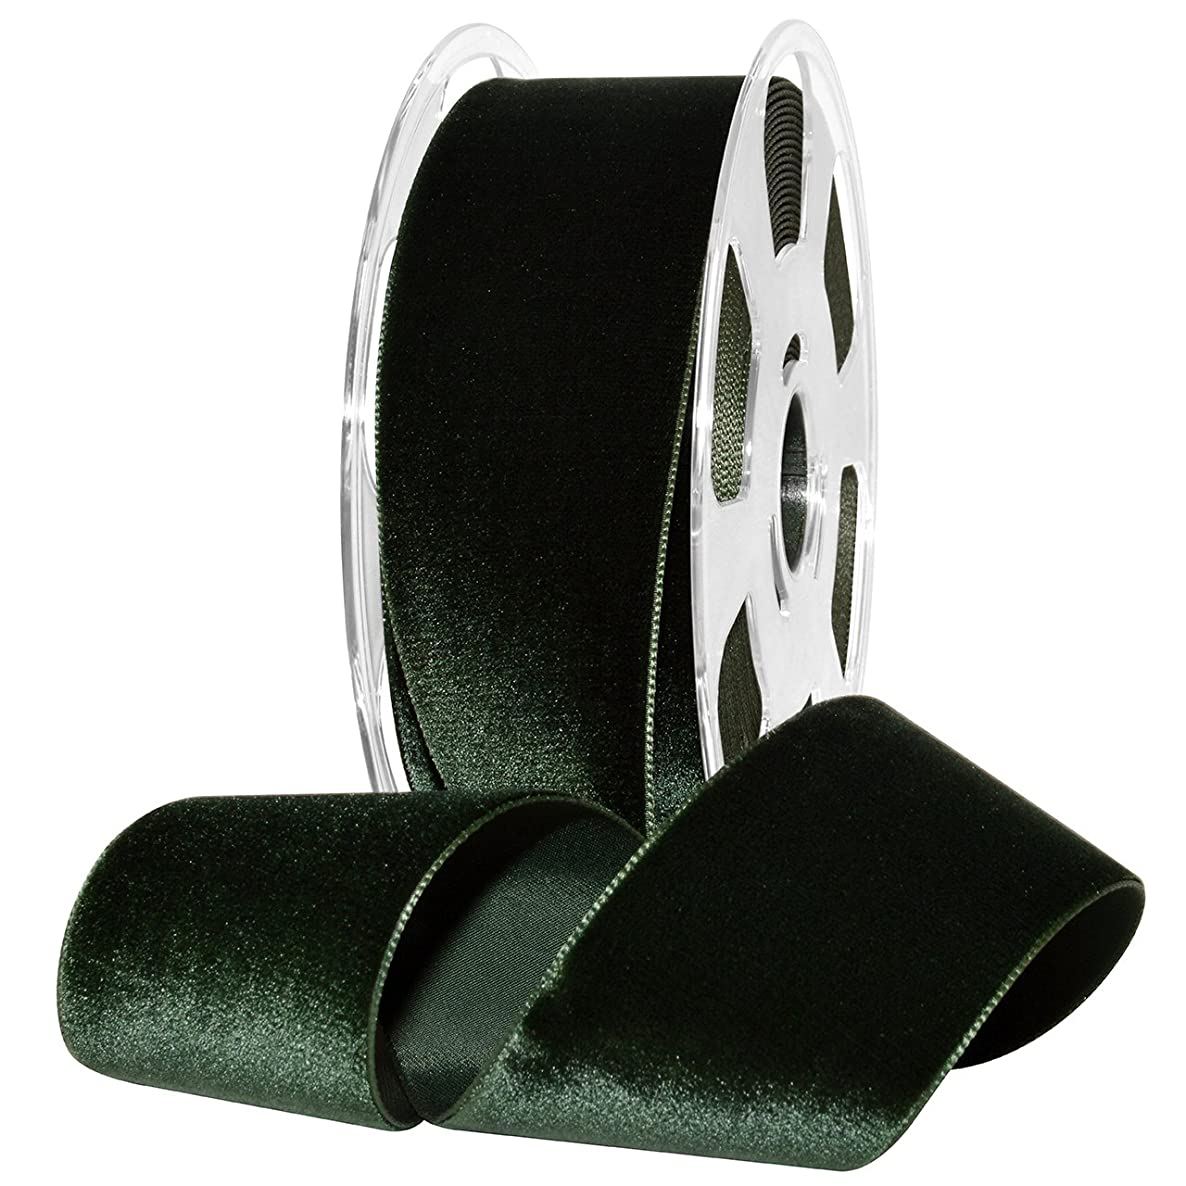 Morex Ribbon Nylon, 2 inches by 11 Yards, Forrest, Item 01250/10-926 Nylvalour Velvet Ribbon, 2